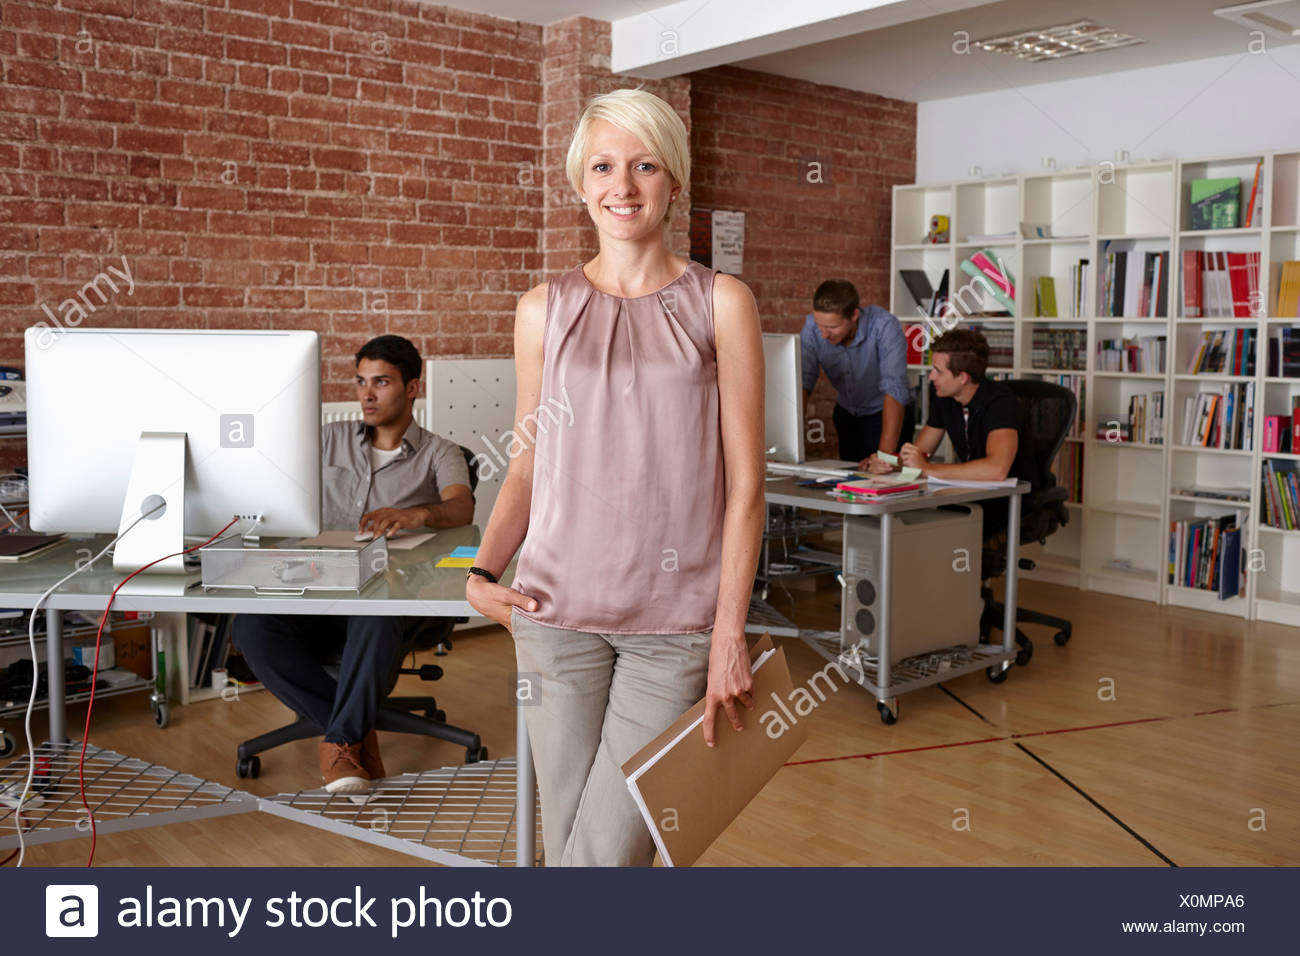 Portrait of mid adult woman in creative office Photo Stock